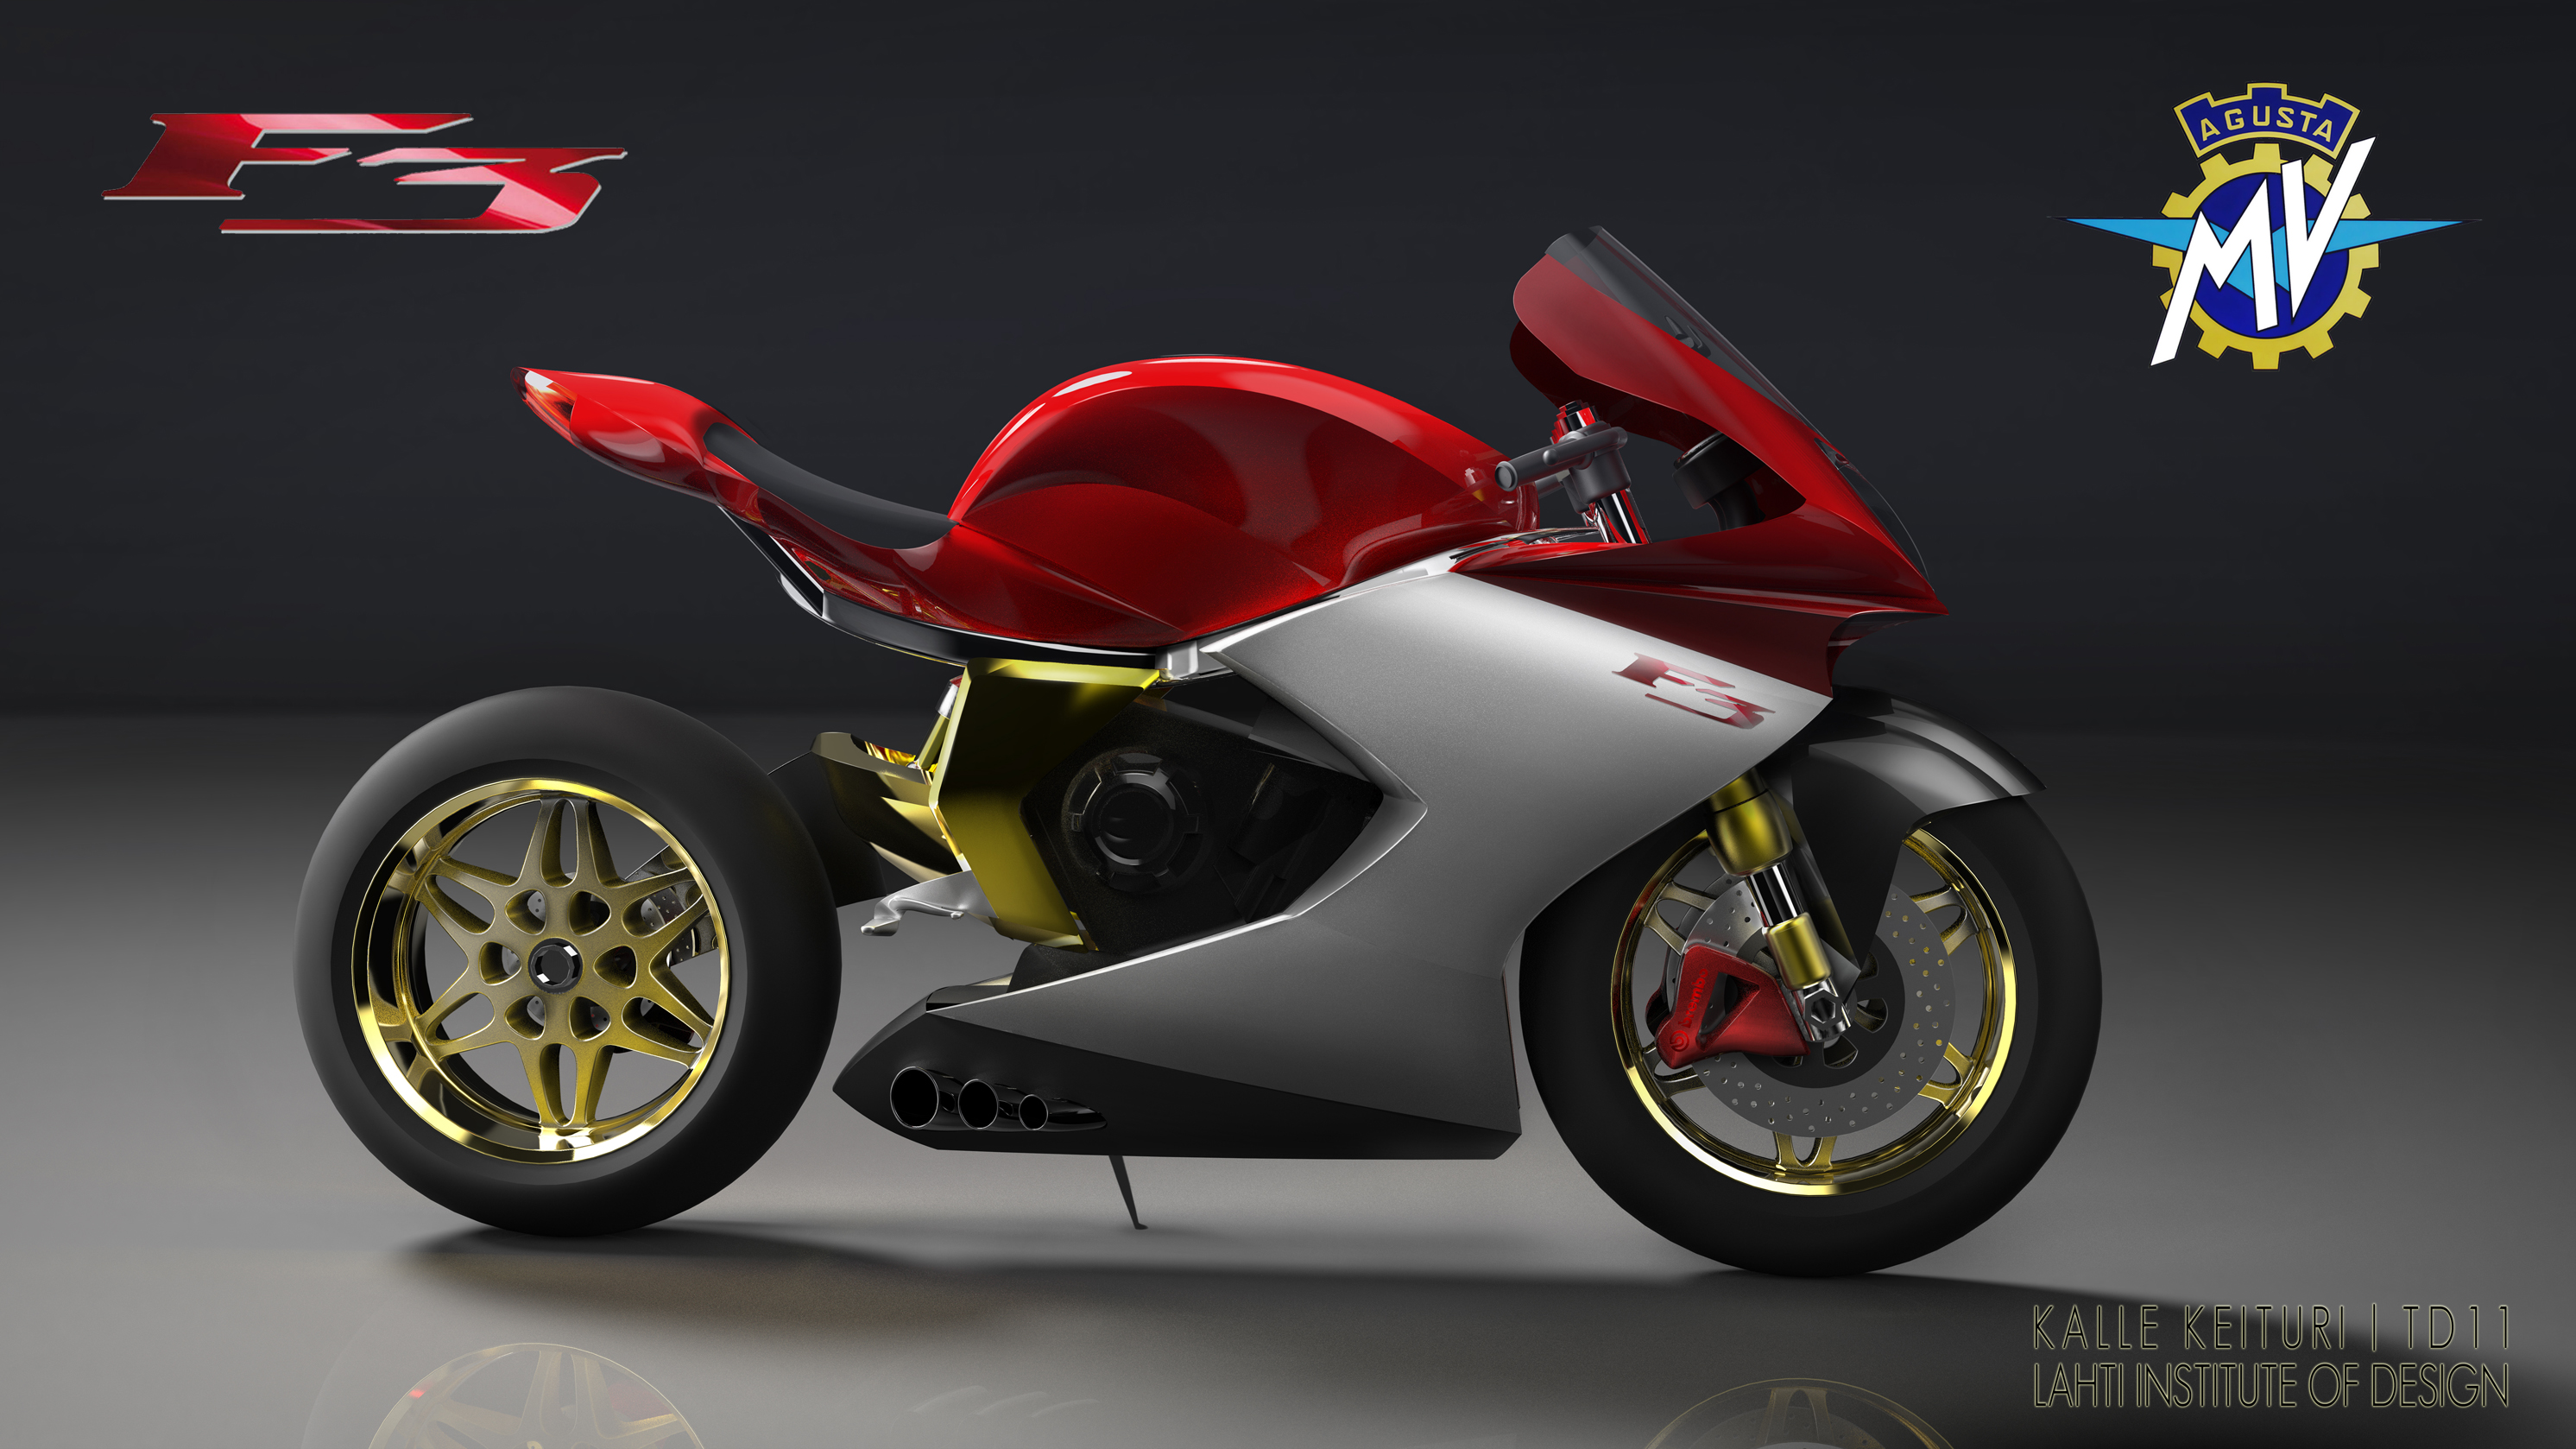 New fresh look for the MV Agusta F3